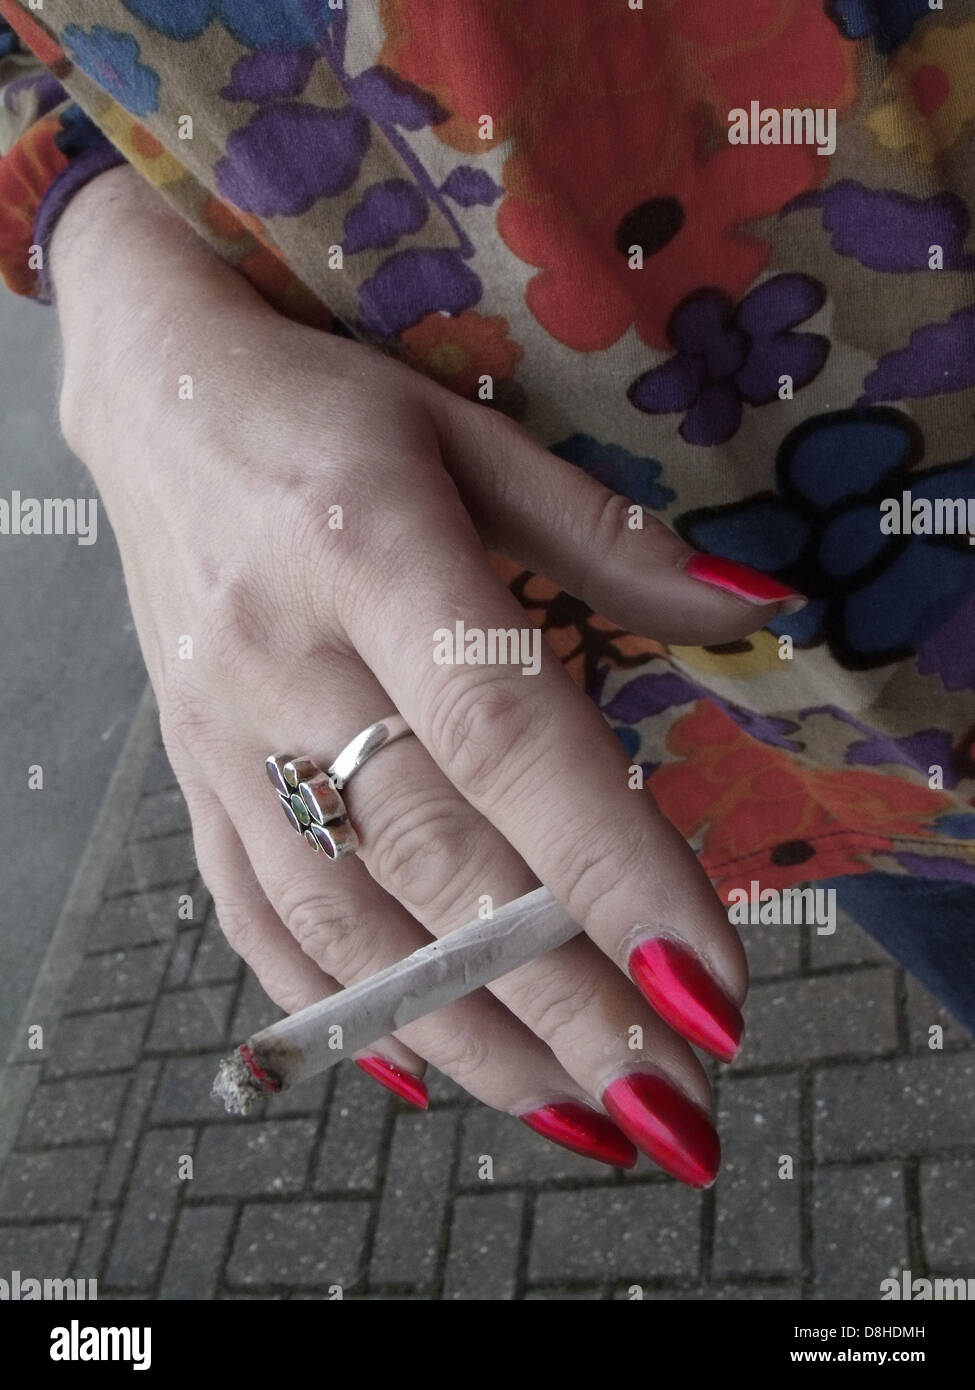 smoker,woman,girl,ring,hand,rizla,red,nails,cigarette,enjoying,smoking-ban,ban,smoking,bad,habits,habit,when,pregnant,danger,dangers,cancel,smoke-free,area,criminal,laws,and,occupational,safety,and,health,regulations,tax,taxation,taxtake,take,lit,tobacco,product,public,spaces,Legislation,gotonysmith,second-hand,smoke,second,cancer,lung,cancer,cardiovascular,disease,lung,ailments,emphysema,bronchitis,asthma,healthy,lifestyle,Buy Pictures of,Buy Images Of